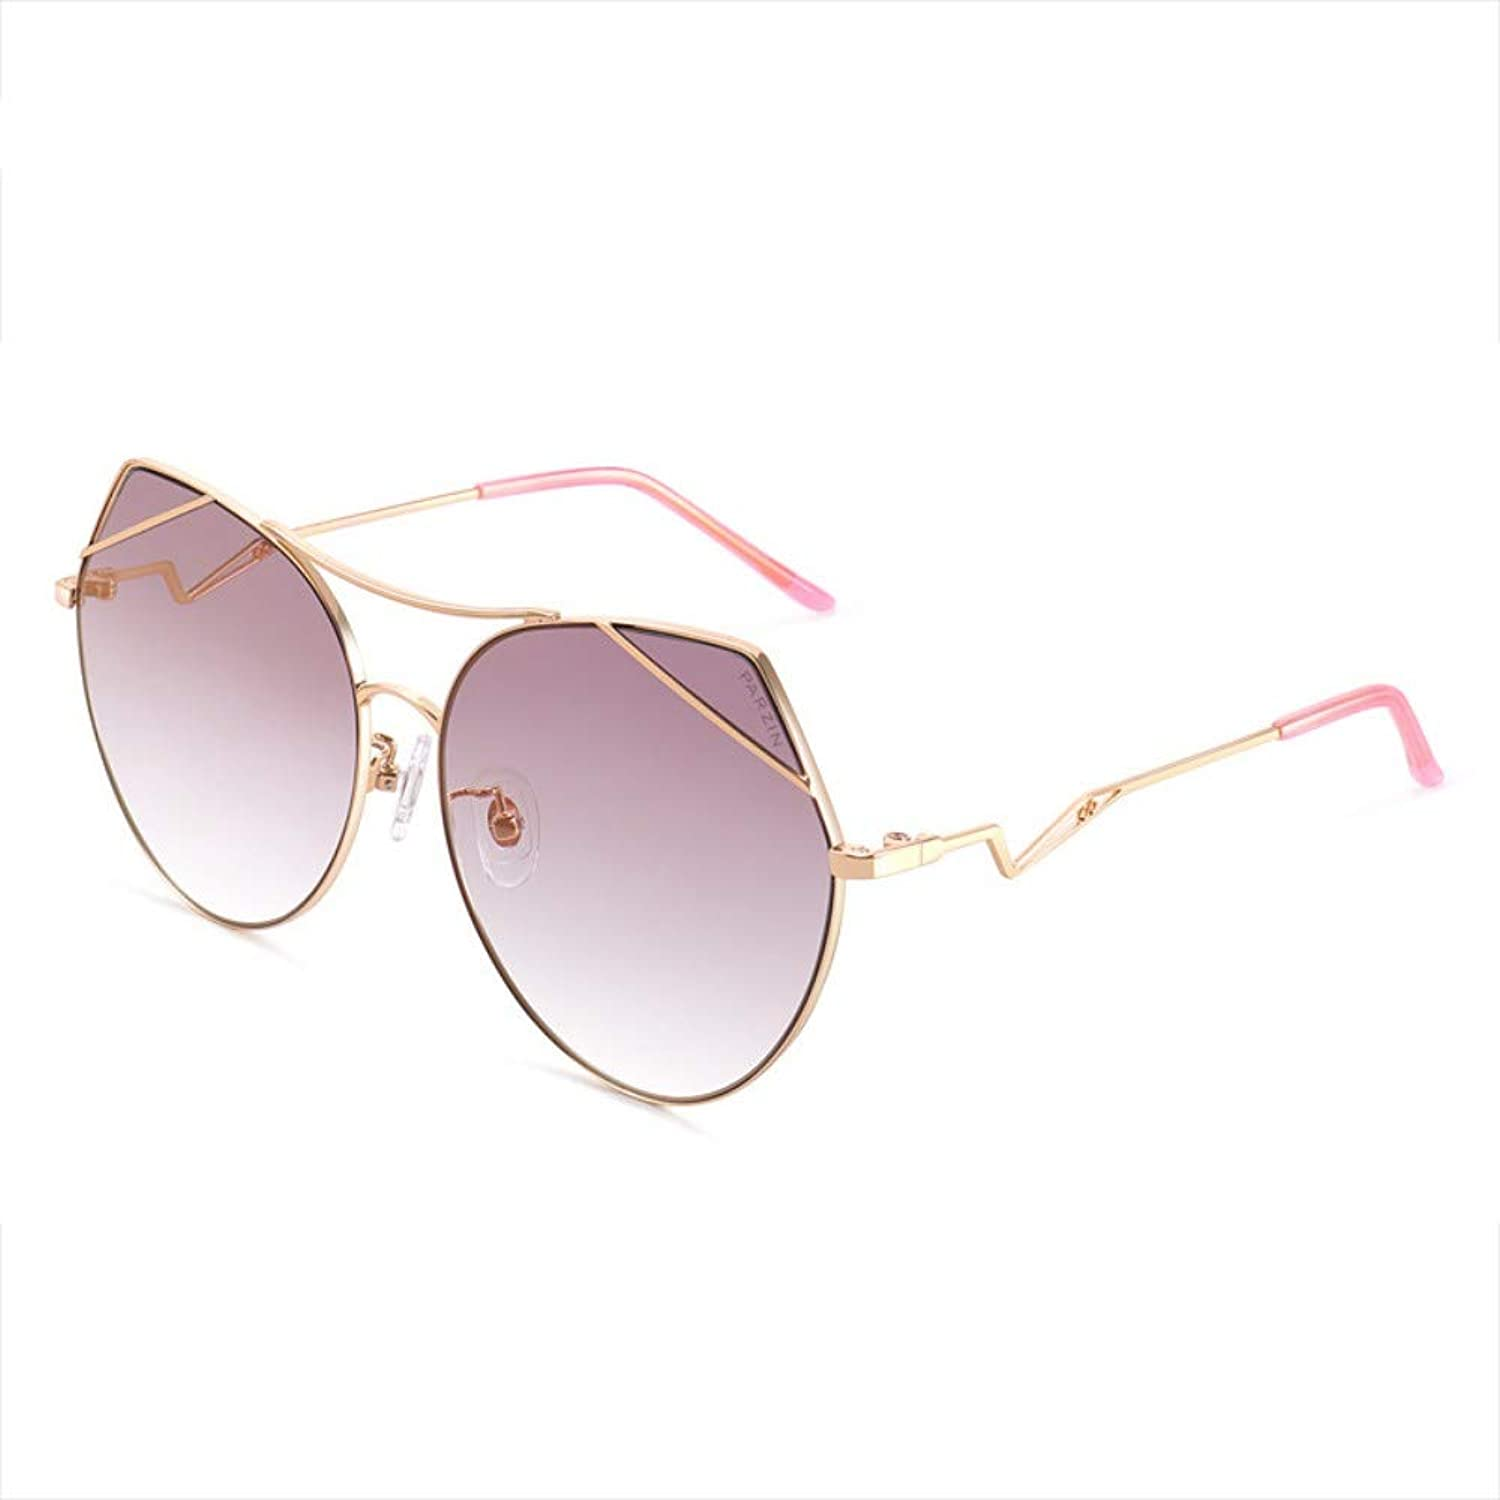 Fashion Sunglasses Ladies Psychedelic colorful Light Sunglasses With Clothes gold Frame